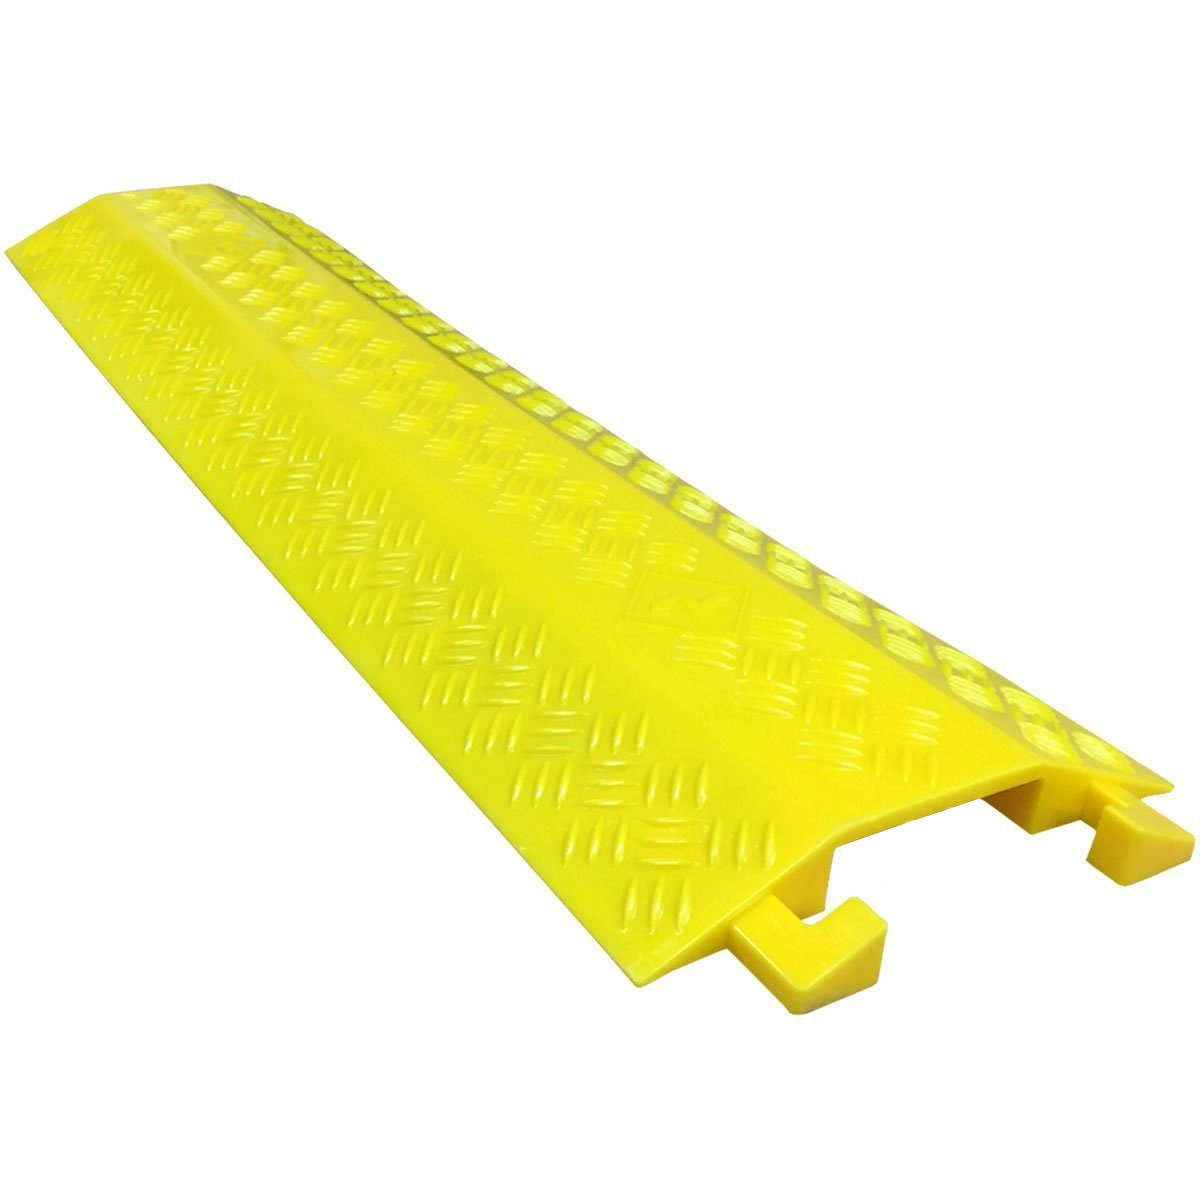 EZ Runner Slim PVC Drop Over Cable Ramp - Single Channel - Yellow (Pack of 3)